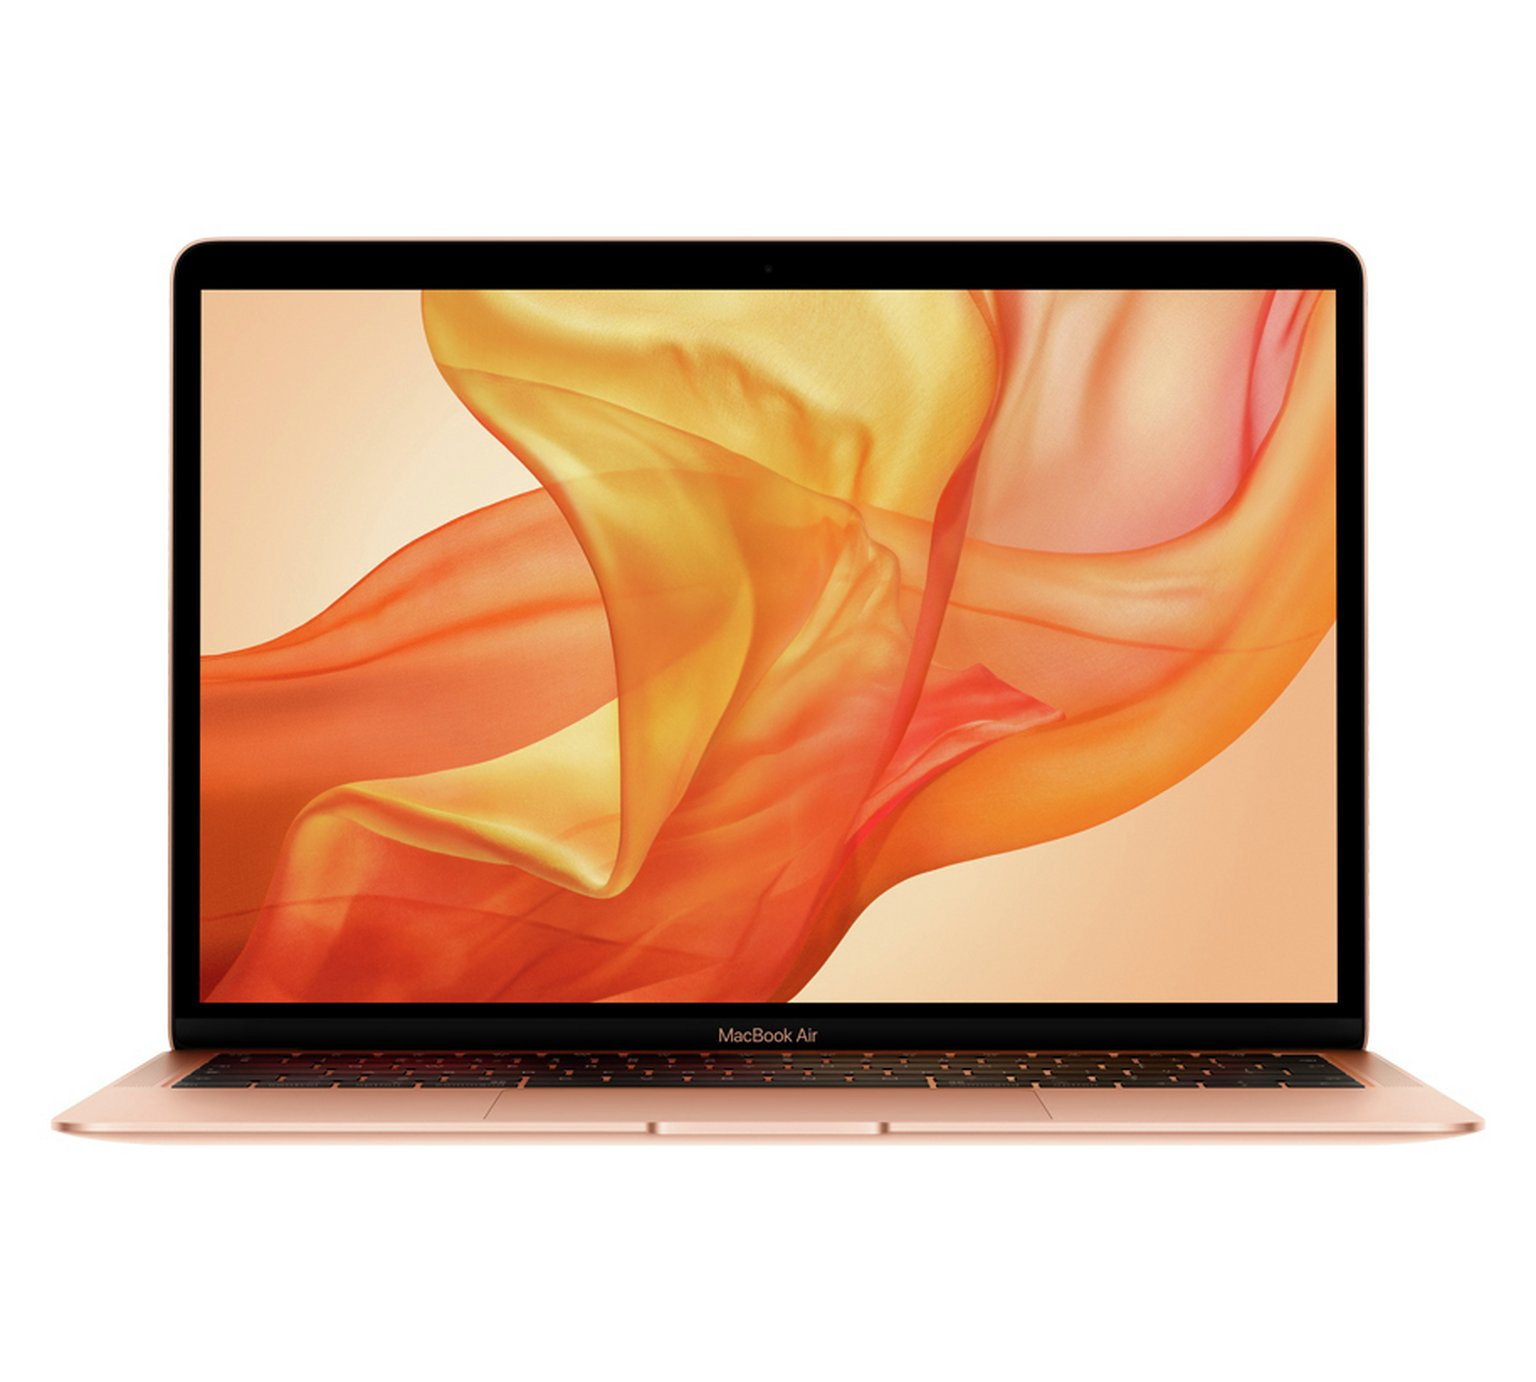 Apple MacBook Air 2018 13 Inch i5 8GB 128GB - Gold